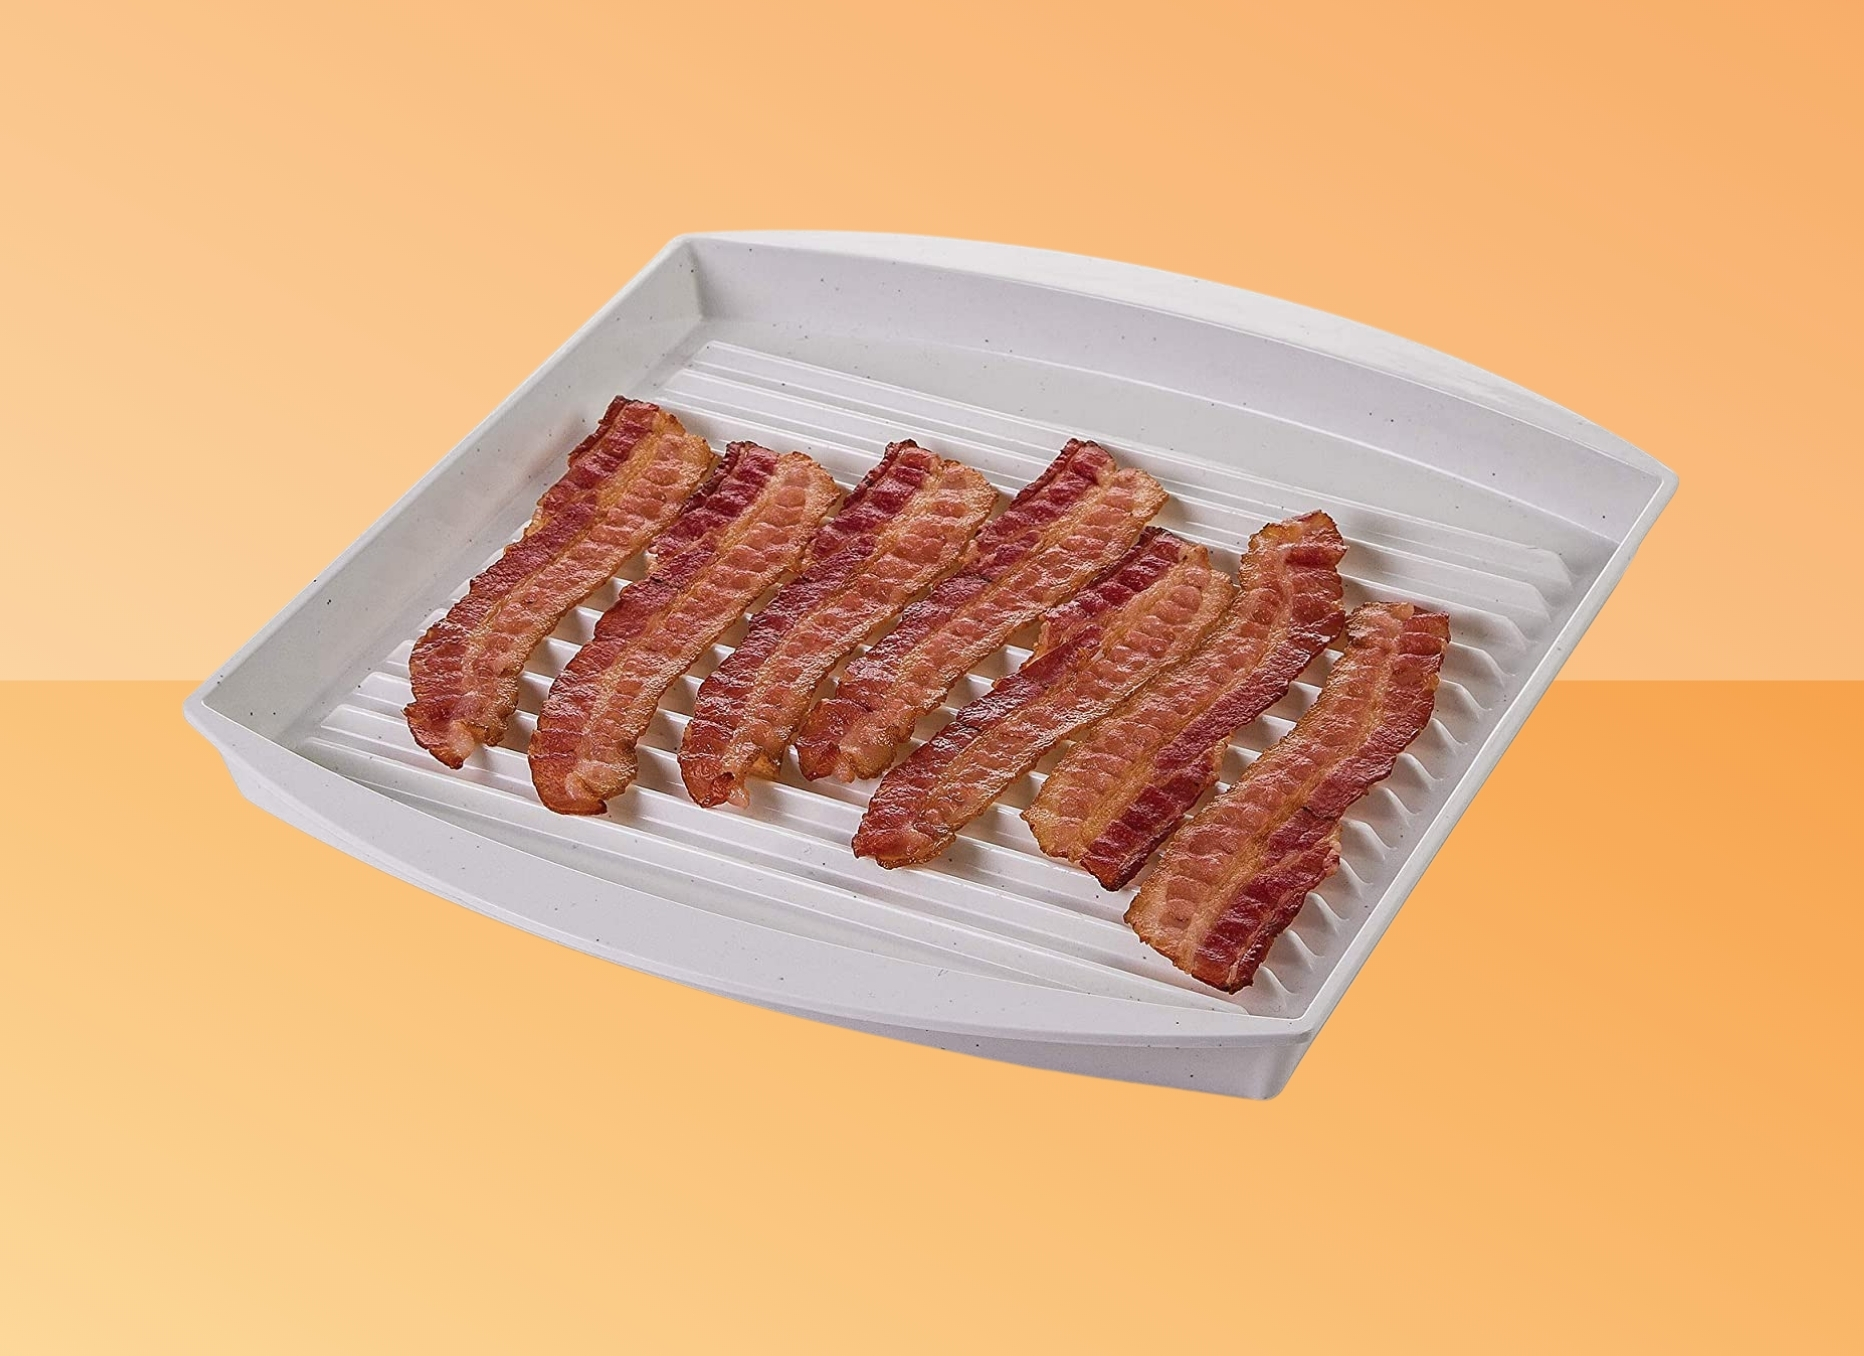 PrepSolutions Microwave Bacon Grill Plate